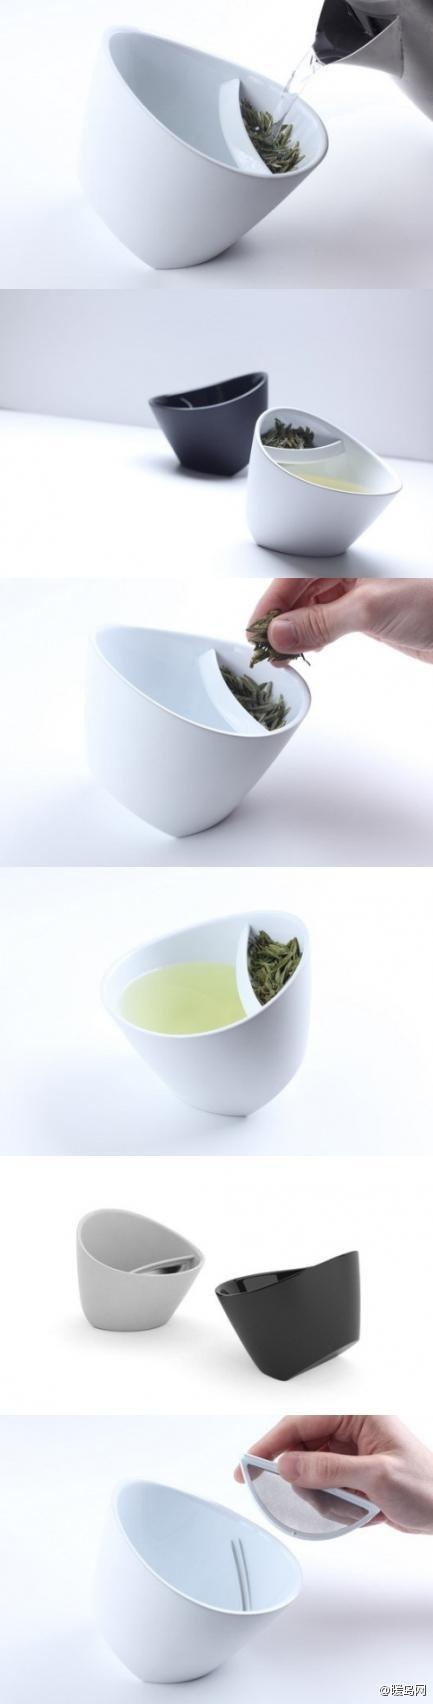 Magisso #Teacup with build in strainer. Made of BPA Free Plastic $22-$25